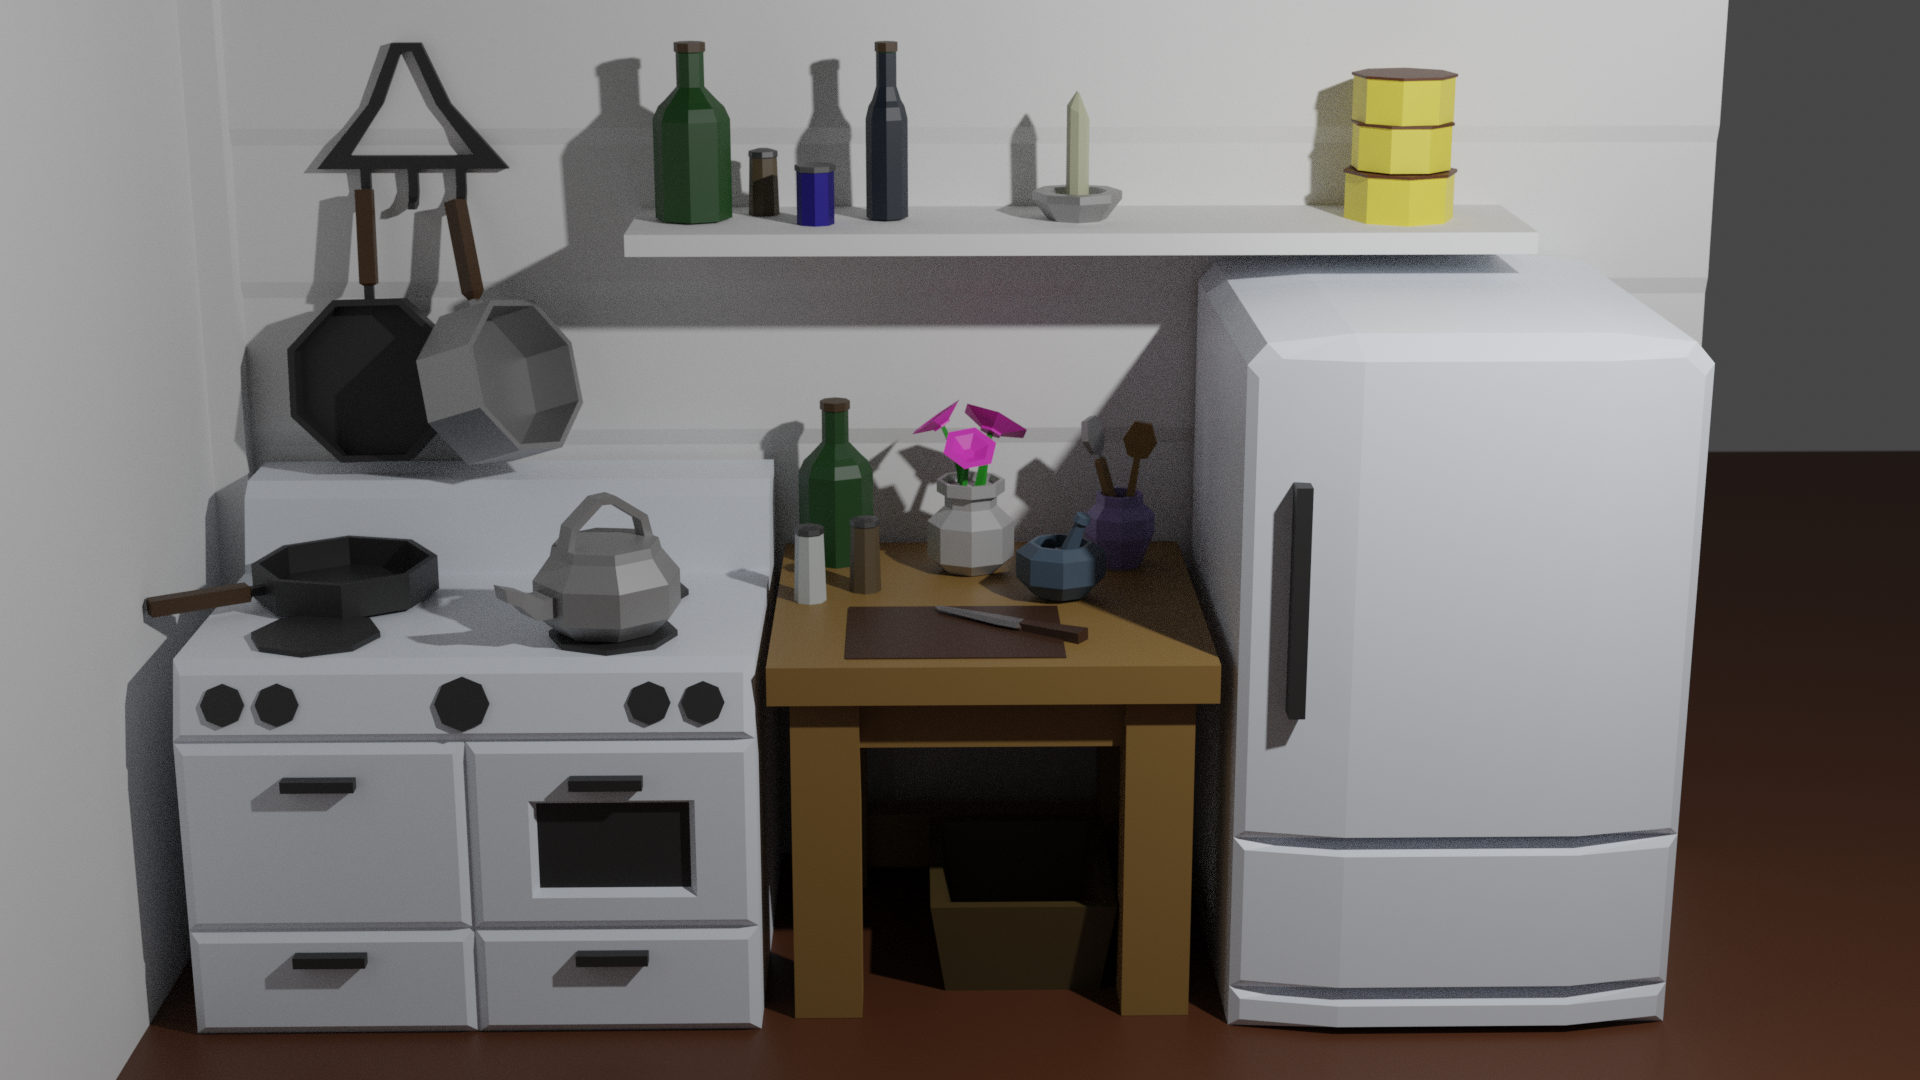 A kitchen scene, modeled in 3D with flat colors and few polygons.